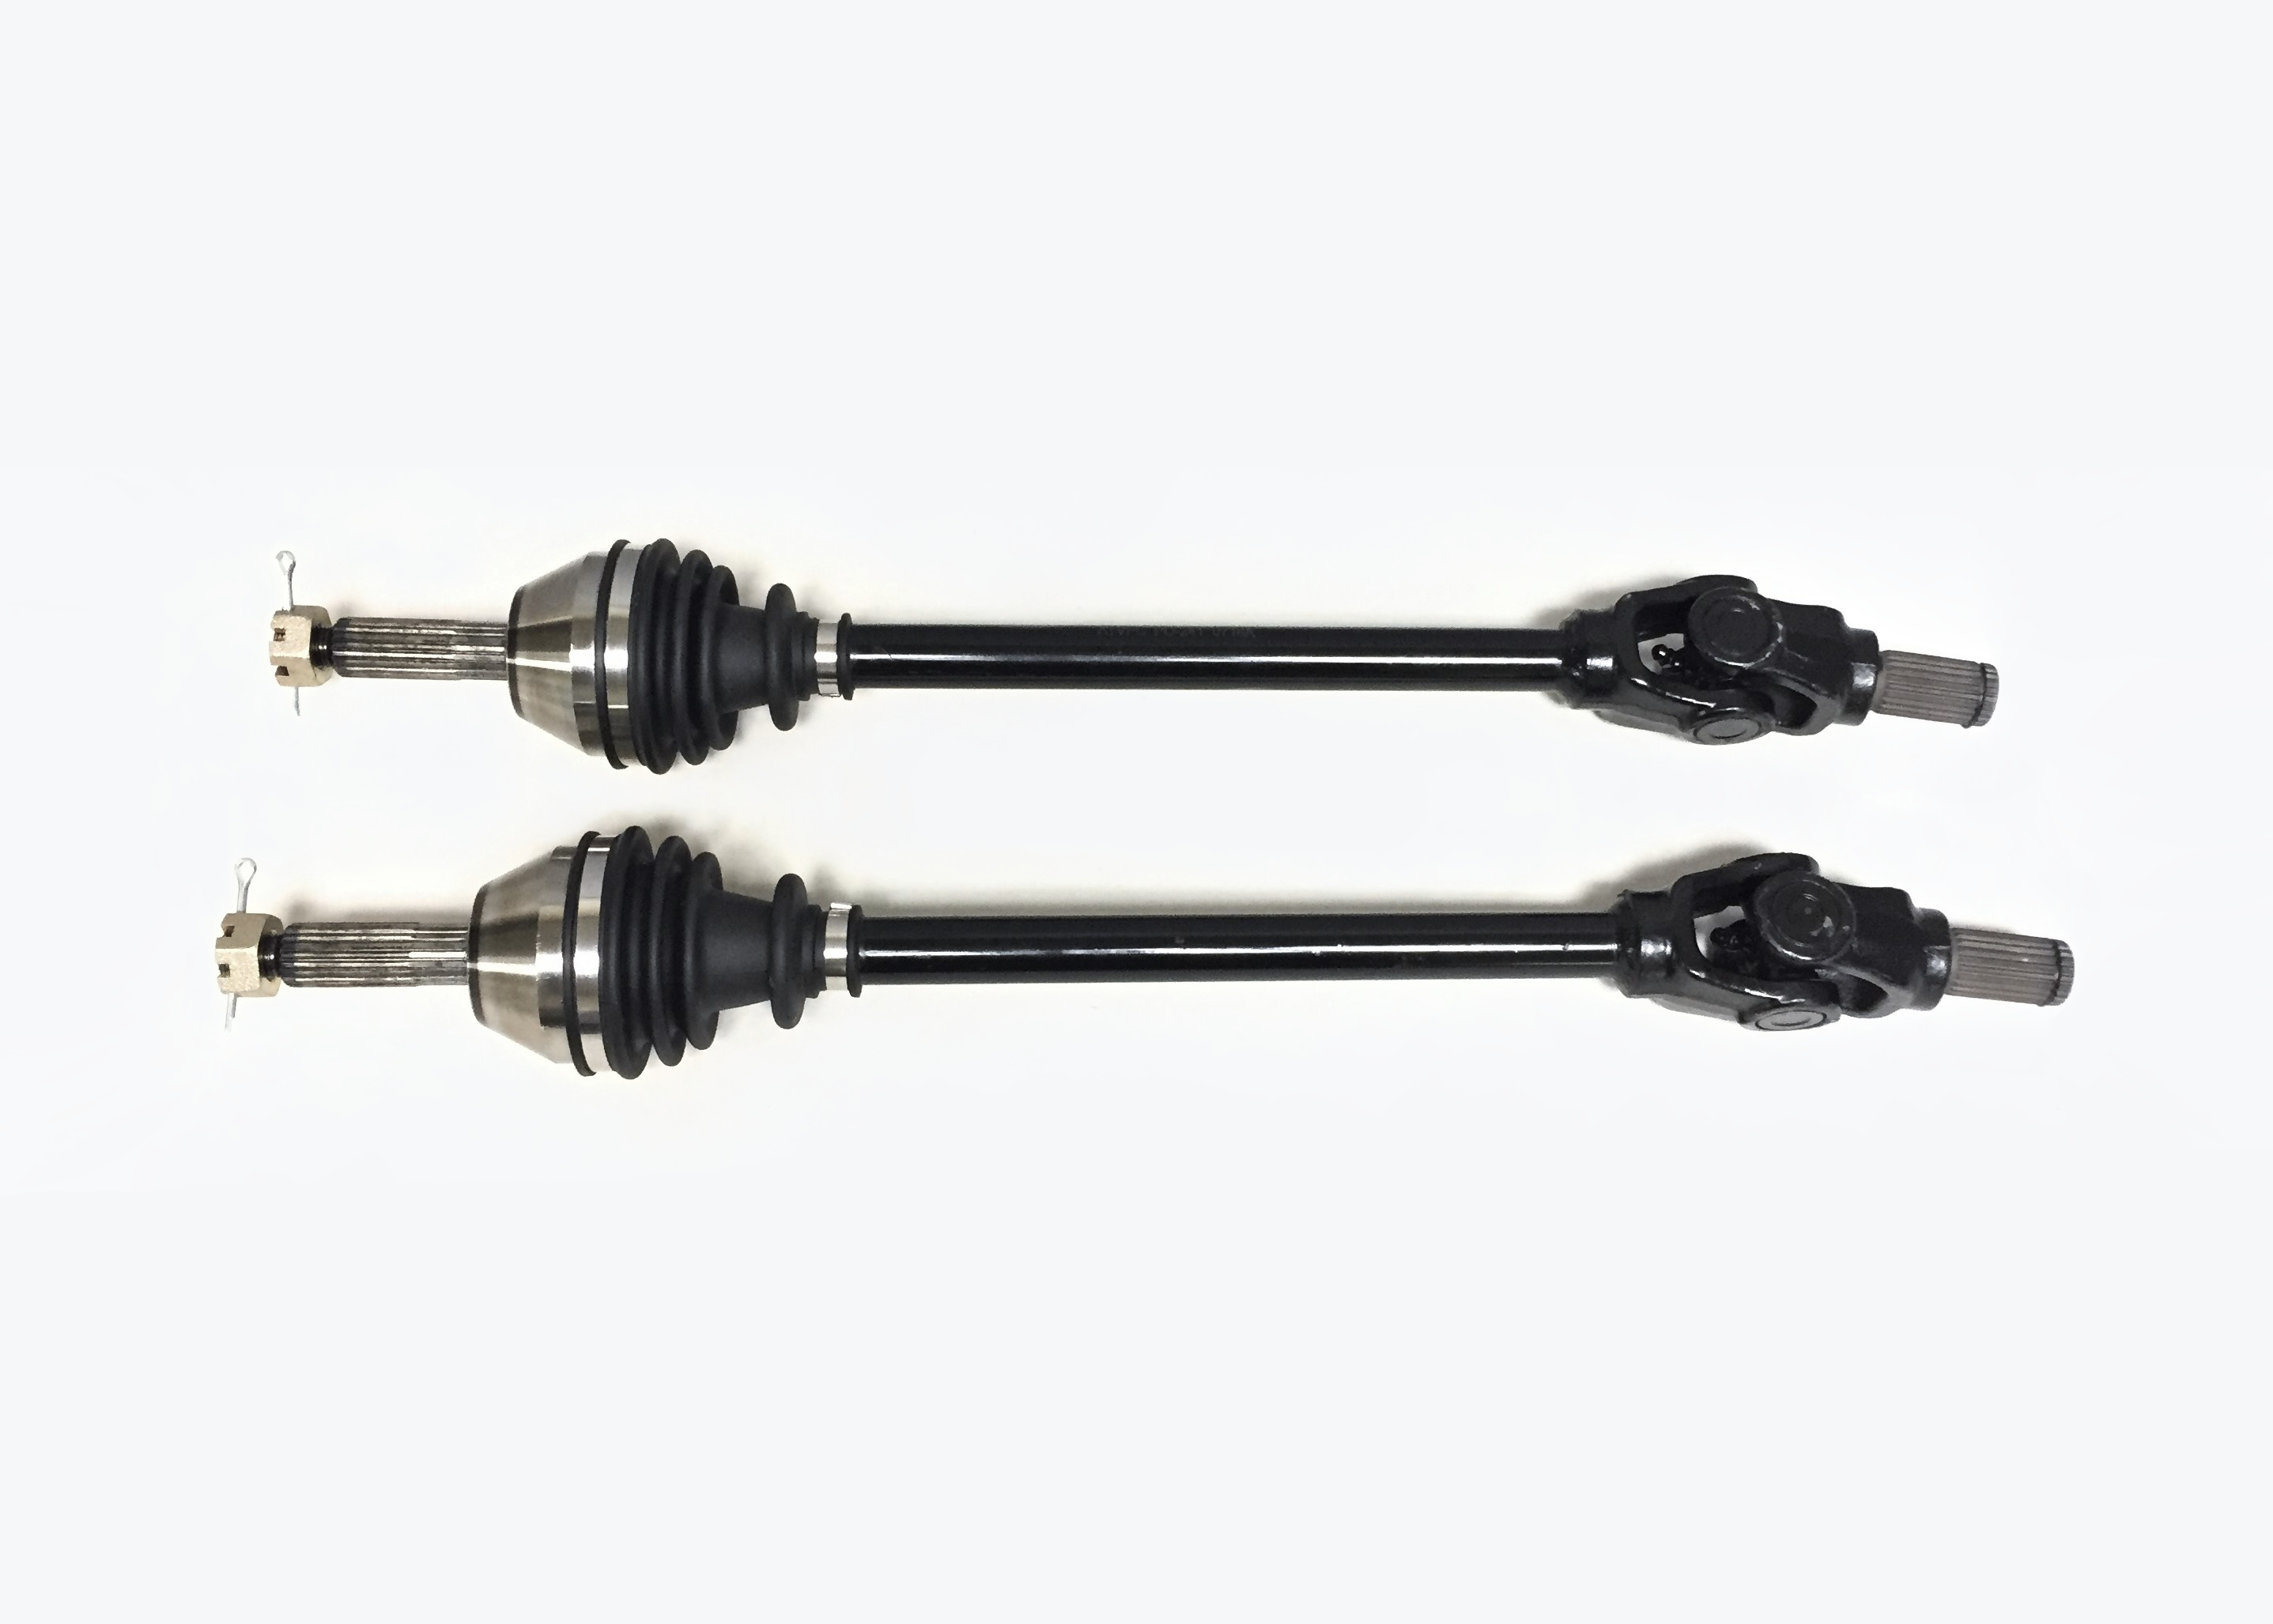 Pair of Front CV Axle Shafts for Polaris Ranger Series 10